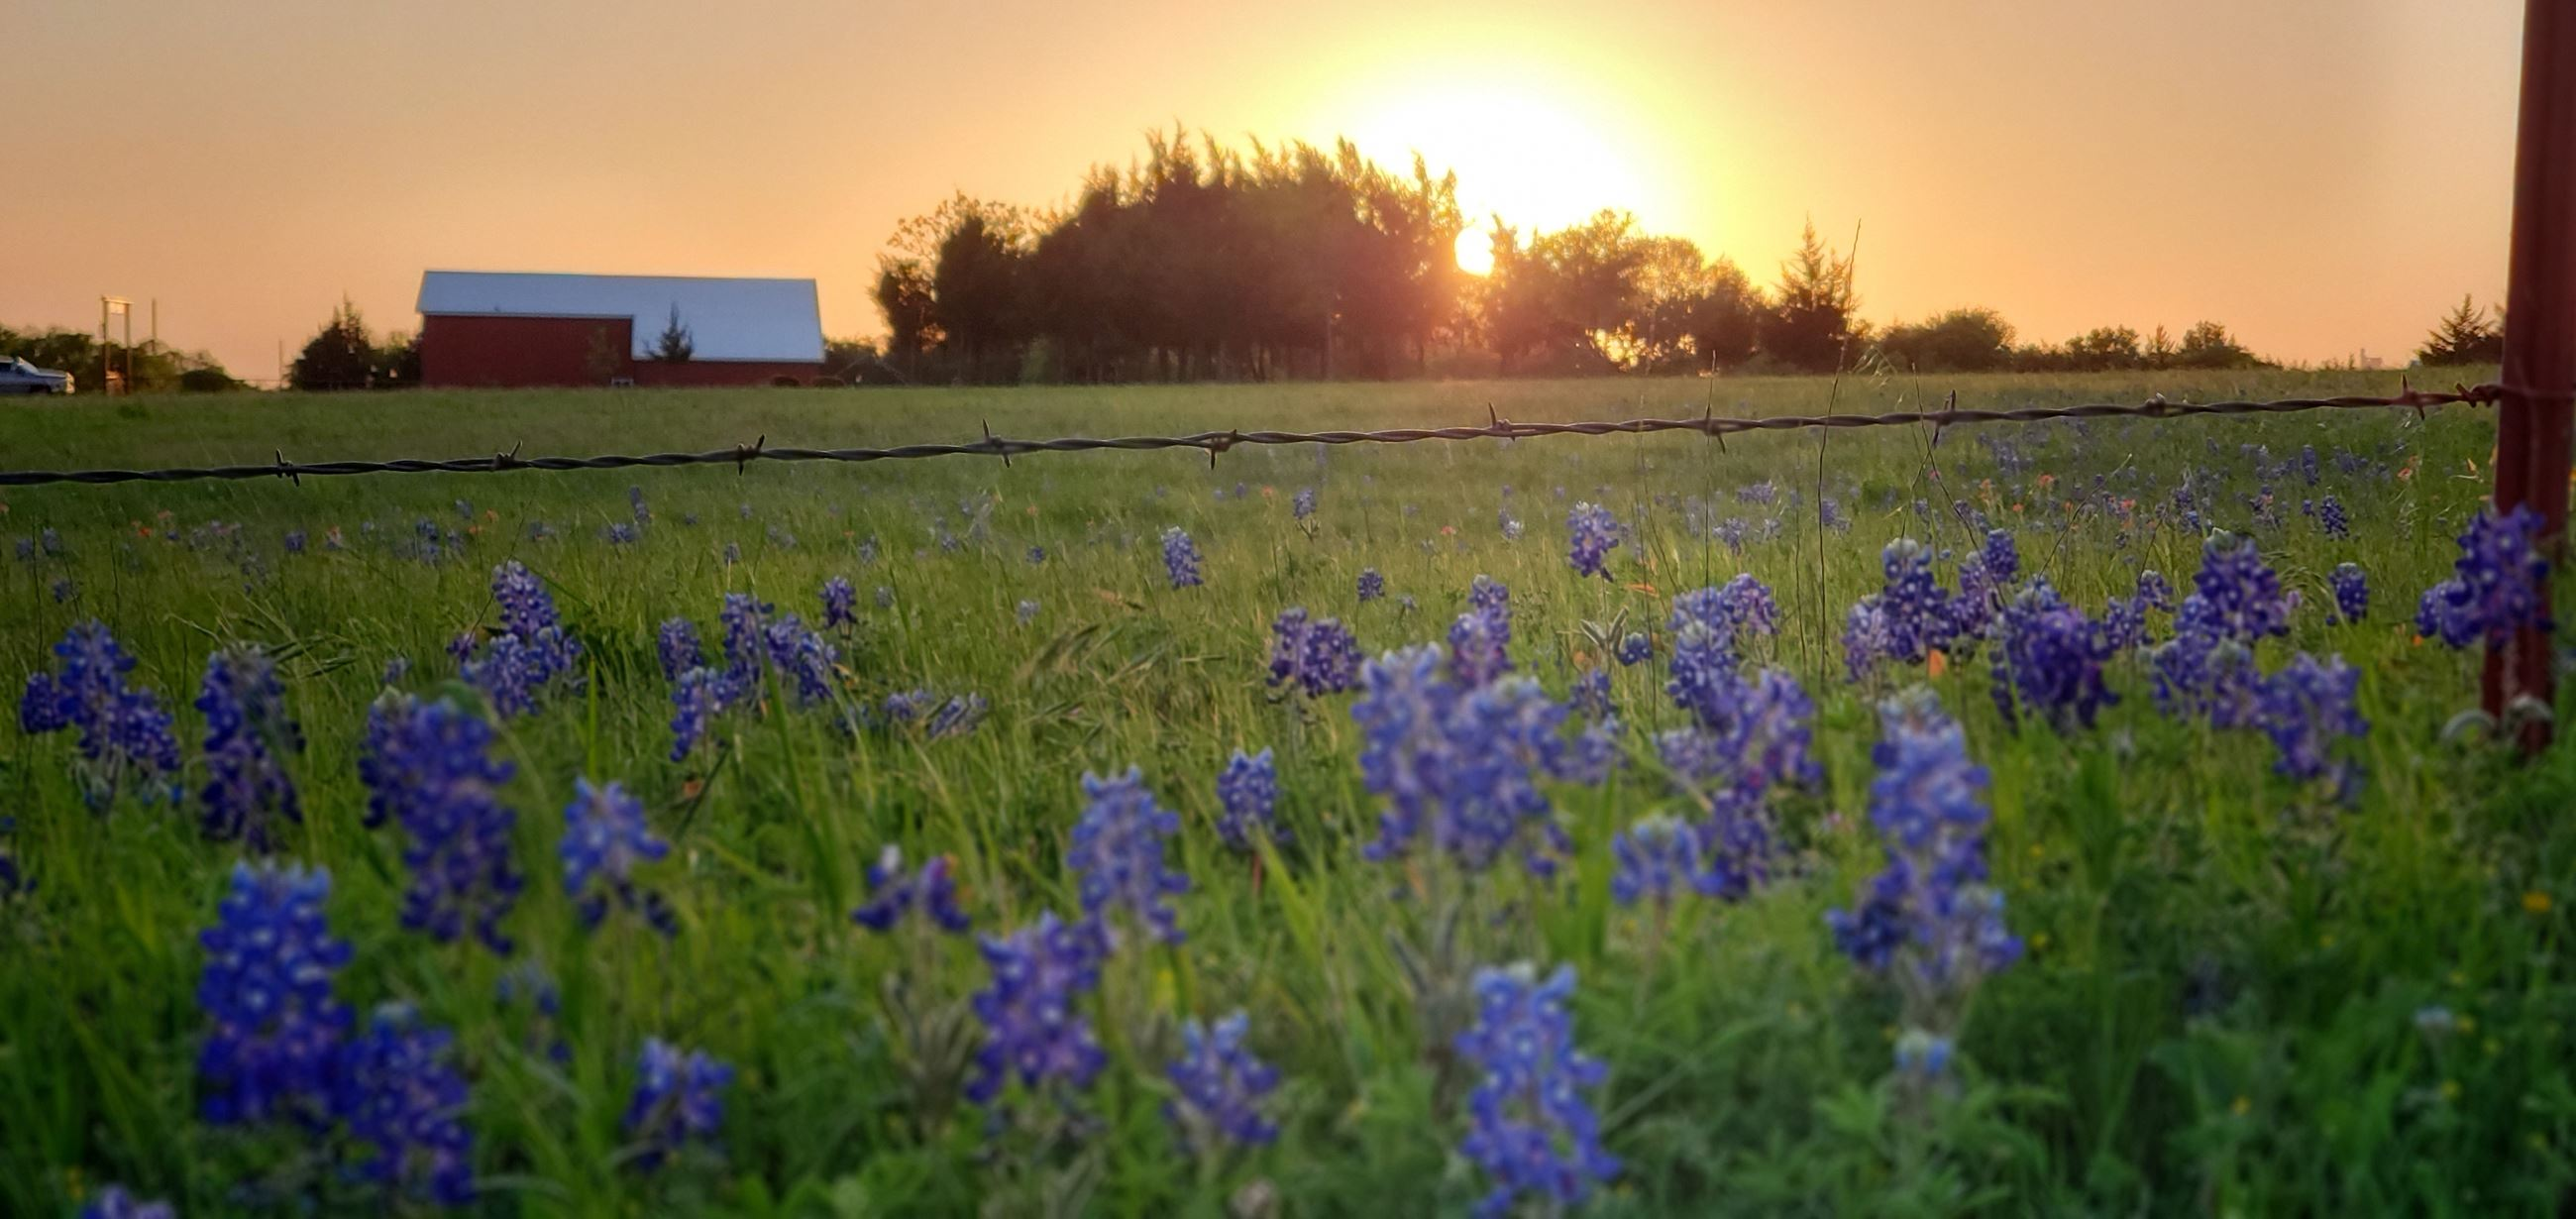 Barbed-wire fence with pasture of bluebonnets and grass with red barn, trees, sunrise in background.